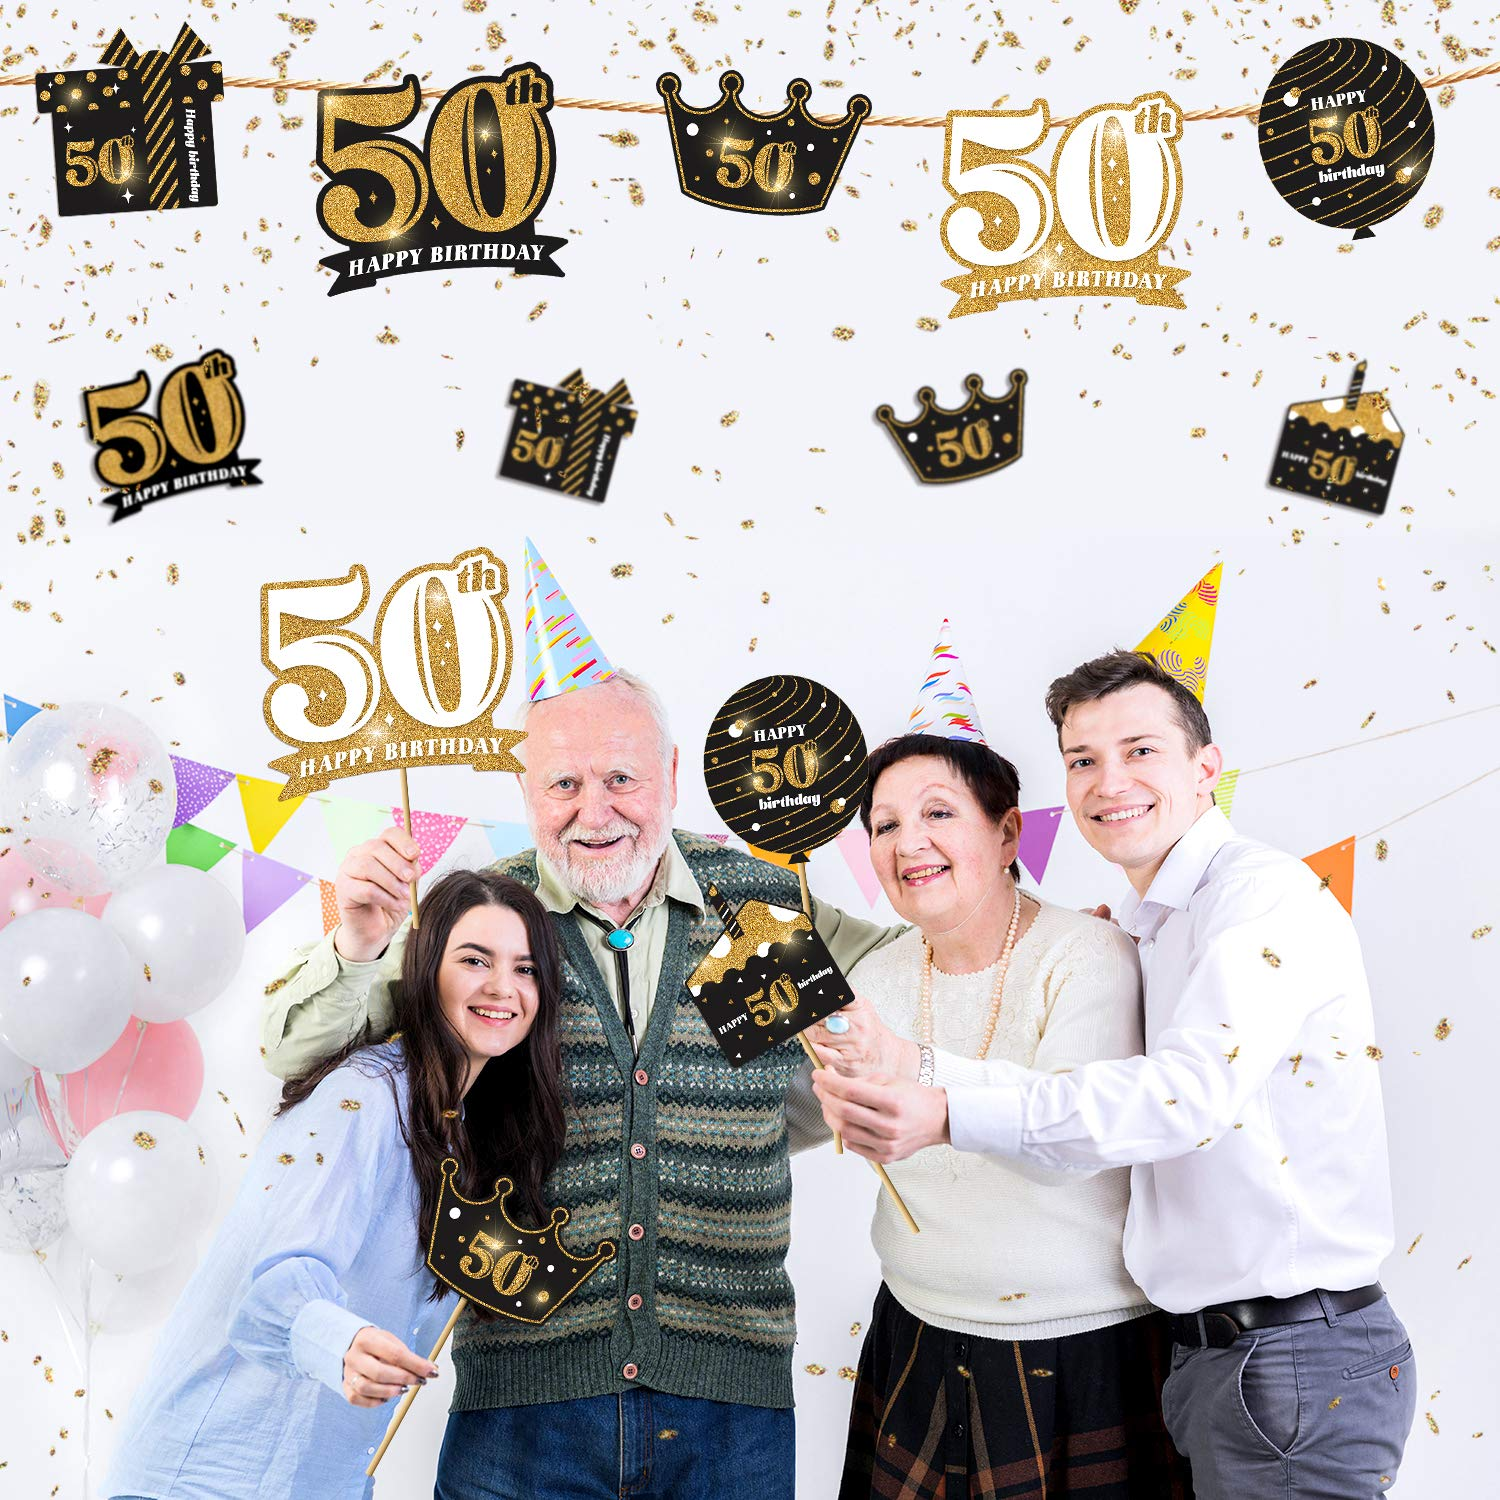 50th Birthday Party Decoration Set Real Glitter Birthday Table Toppers Party Photo Booth Props kortes 24Pack 50th Birthday Party Centerpiece Stickers